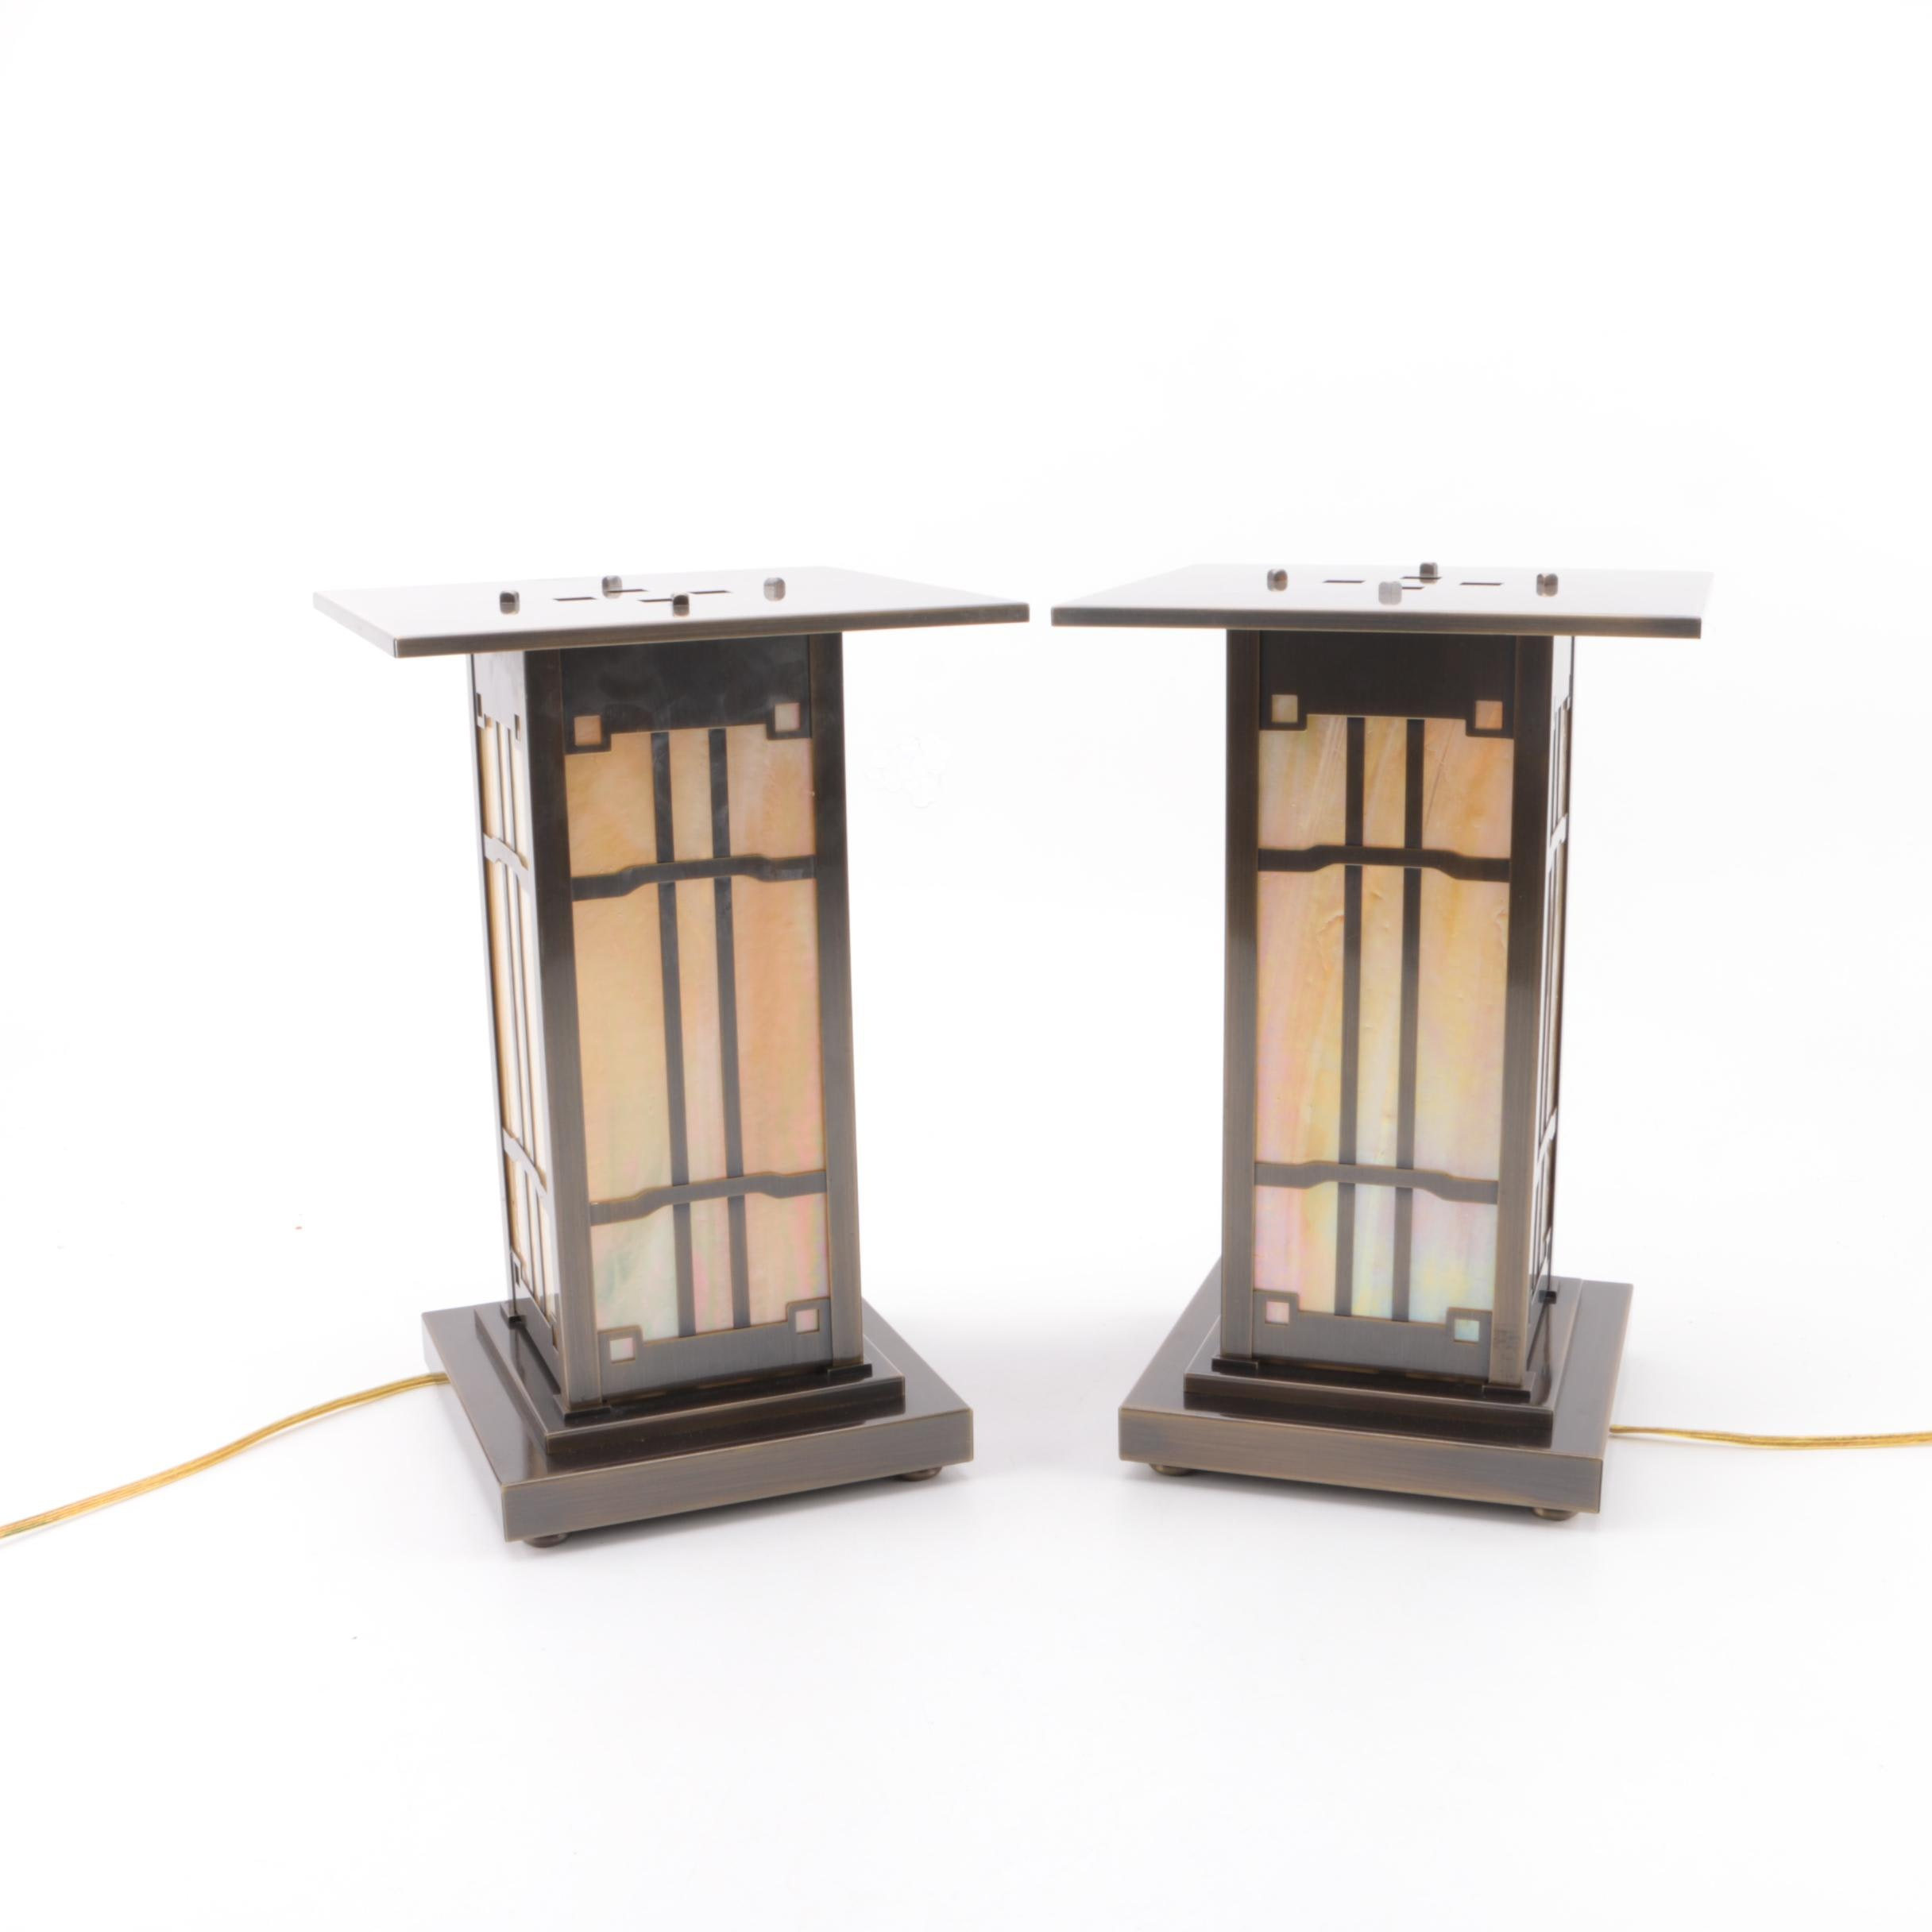 Mission Style Lantern Table Lamps by Arroyo Craftsman